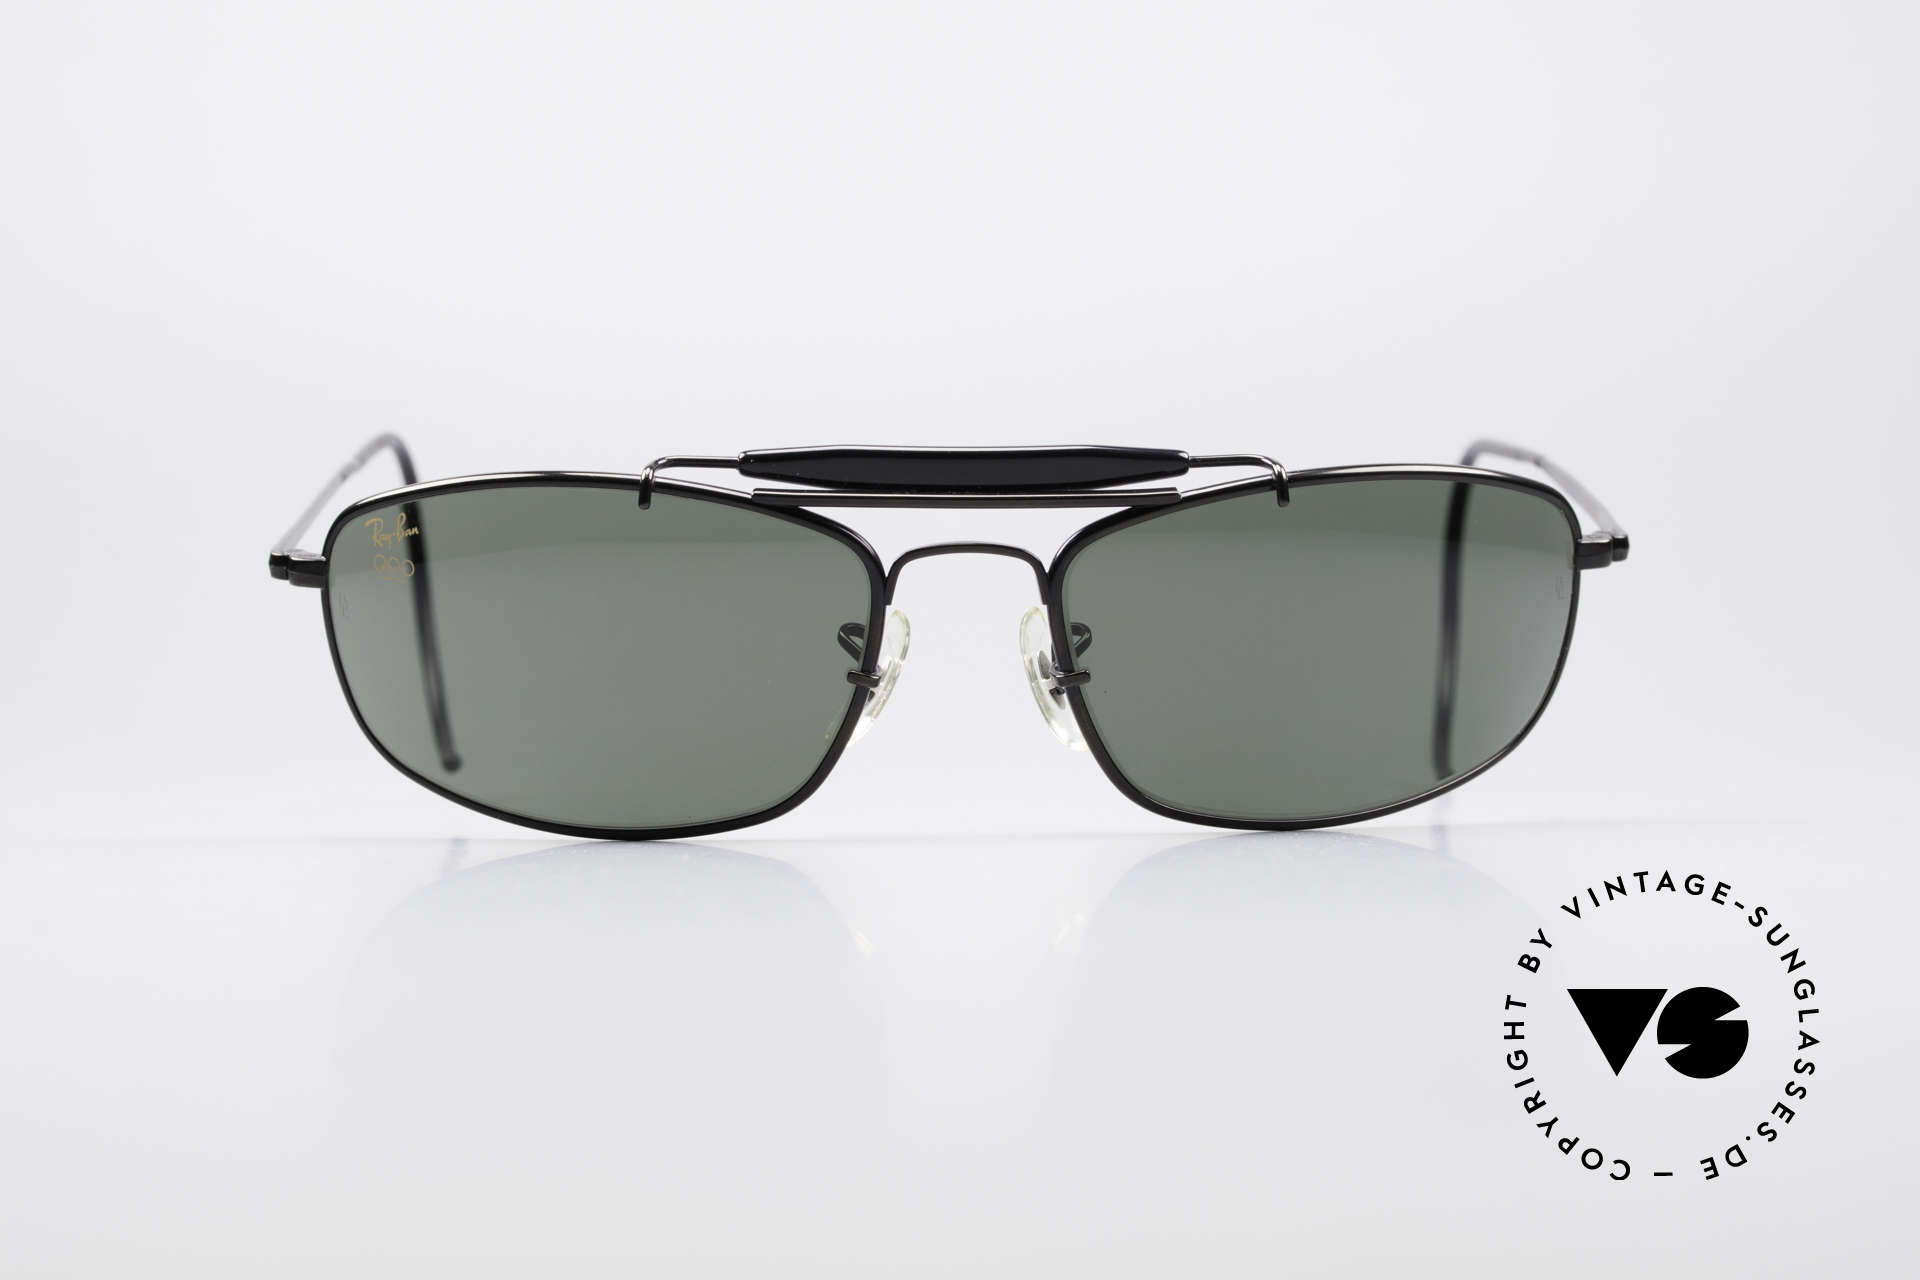 Ray Ban Sport Metal 1994 Olympic Series B&L USA, size 62°18 with legendary Bausch&Lomb mineral lenses, Made for Men